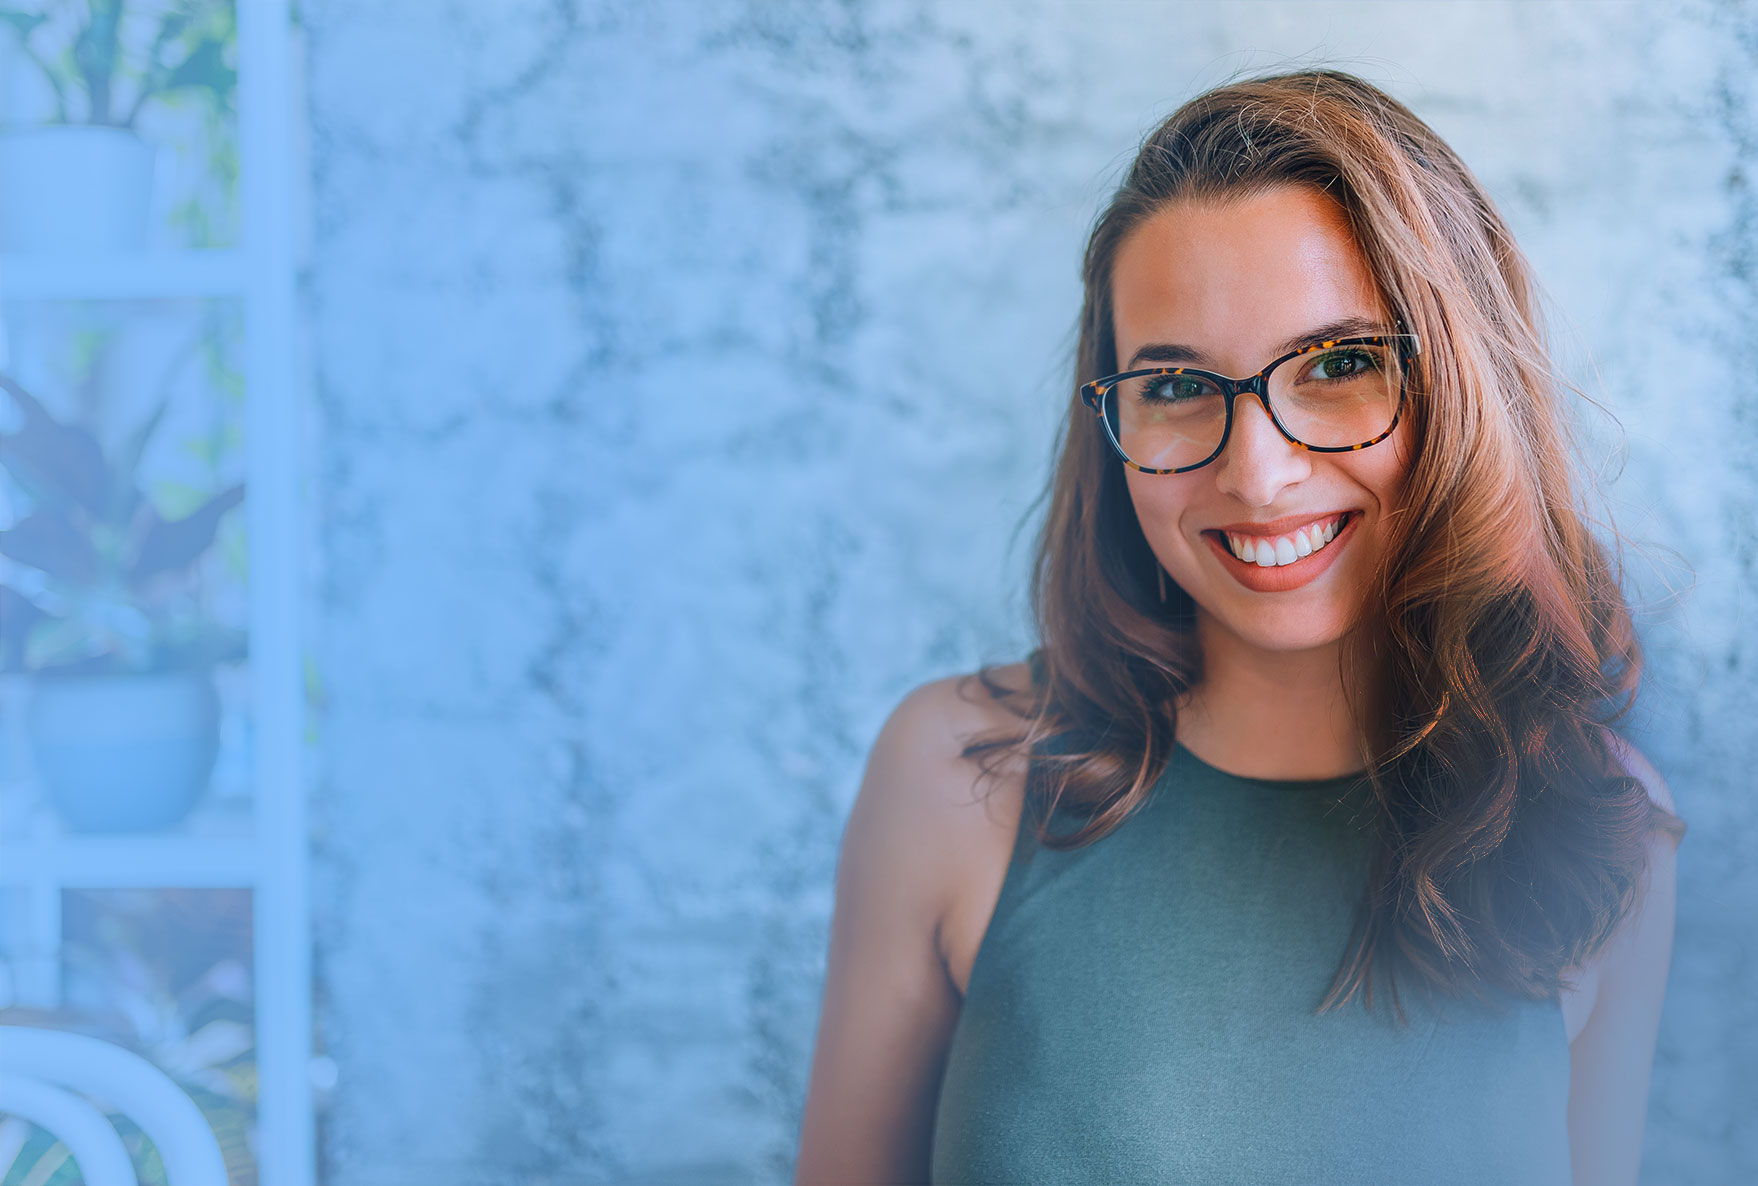 Woman wearing glasses smiles